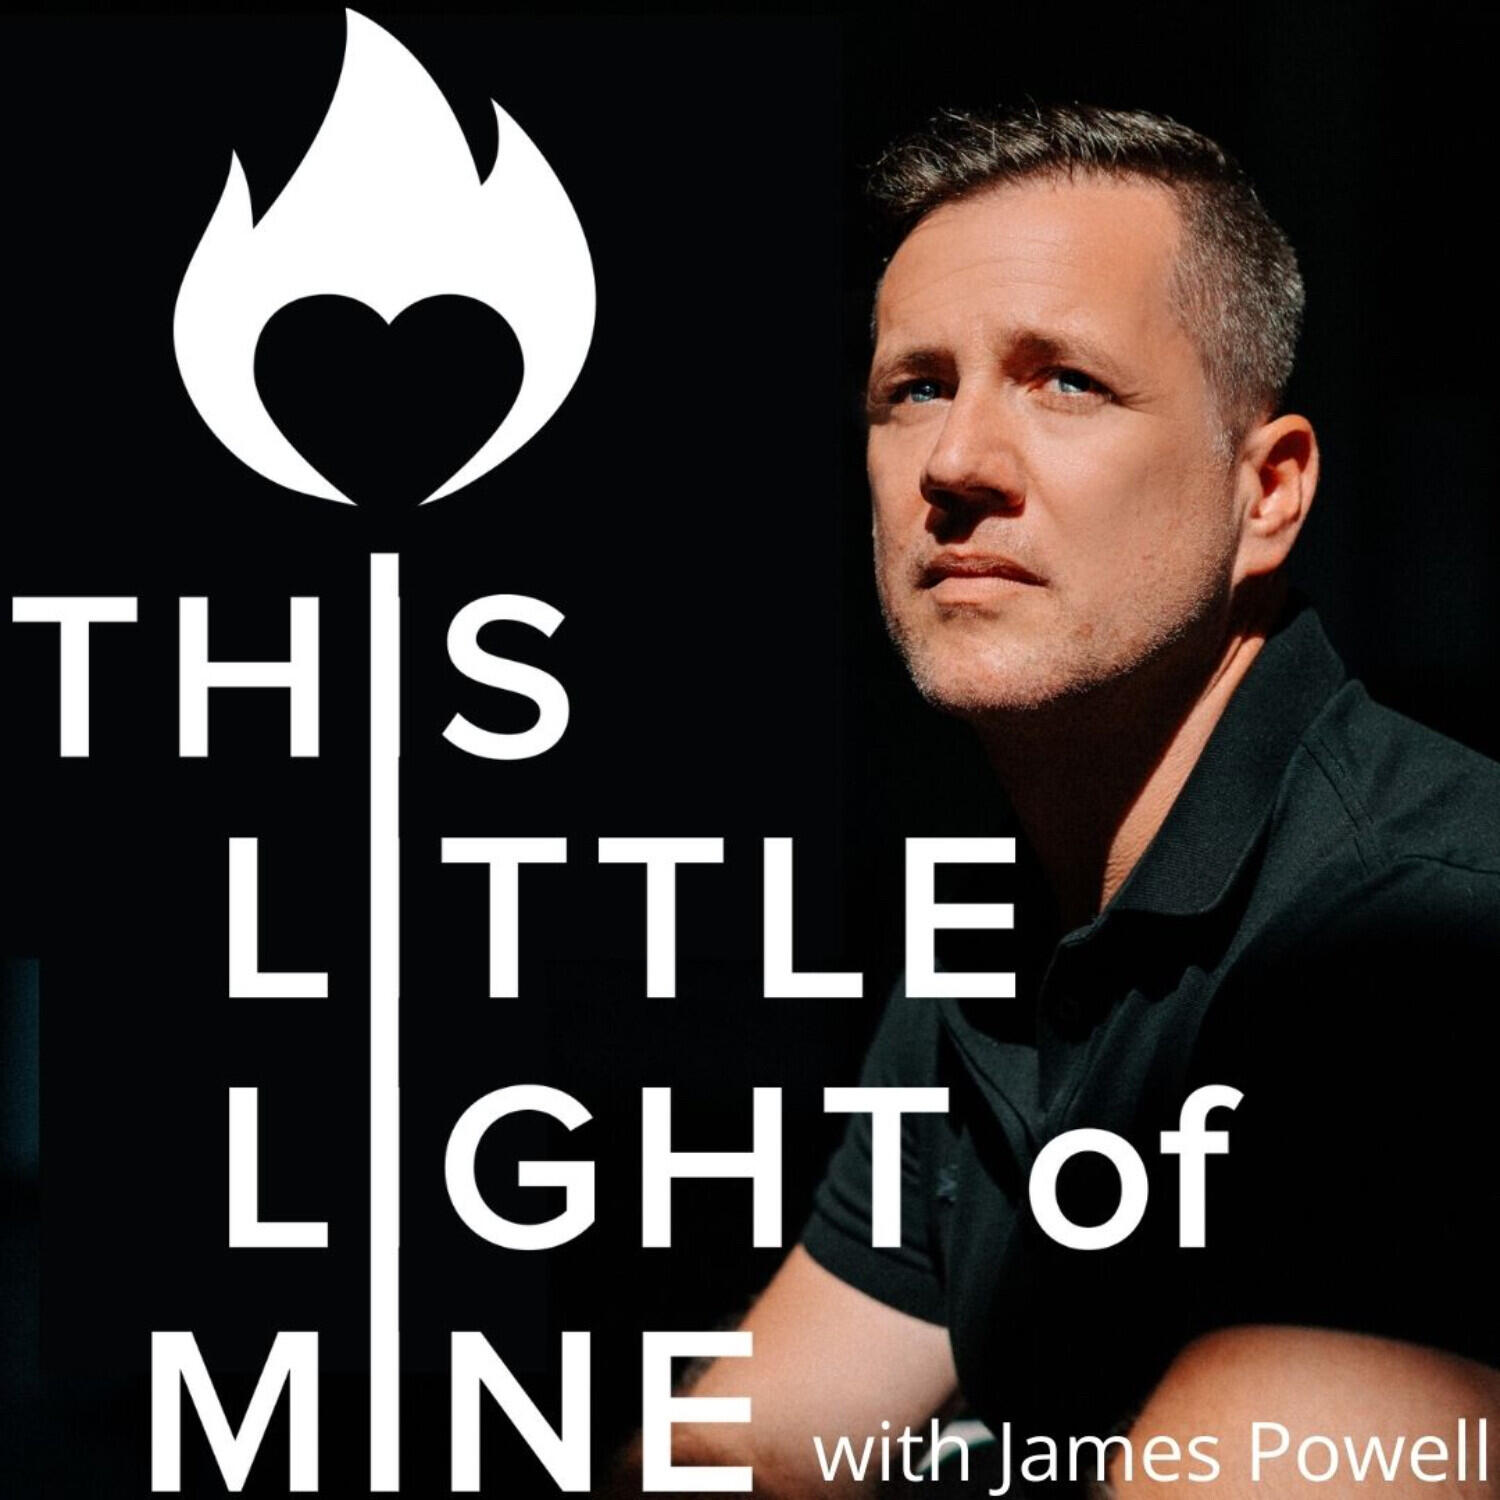 This Little Light of Mine - LGBTQ, Christianity, religious trauma, mental health